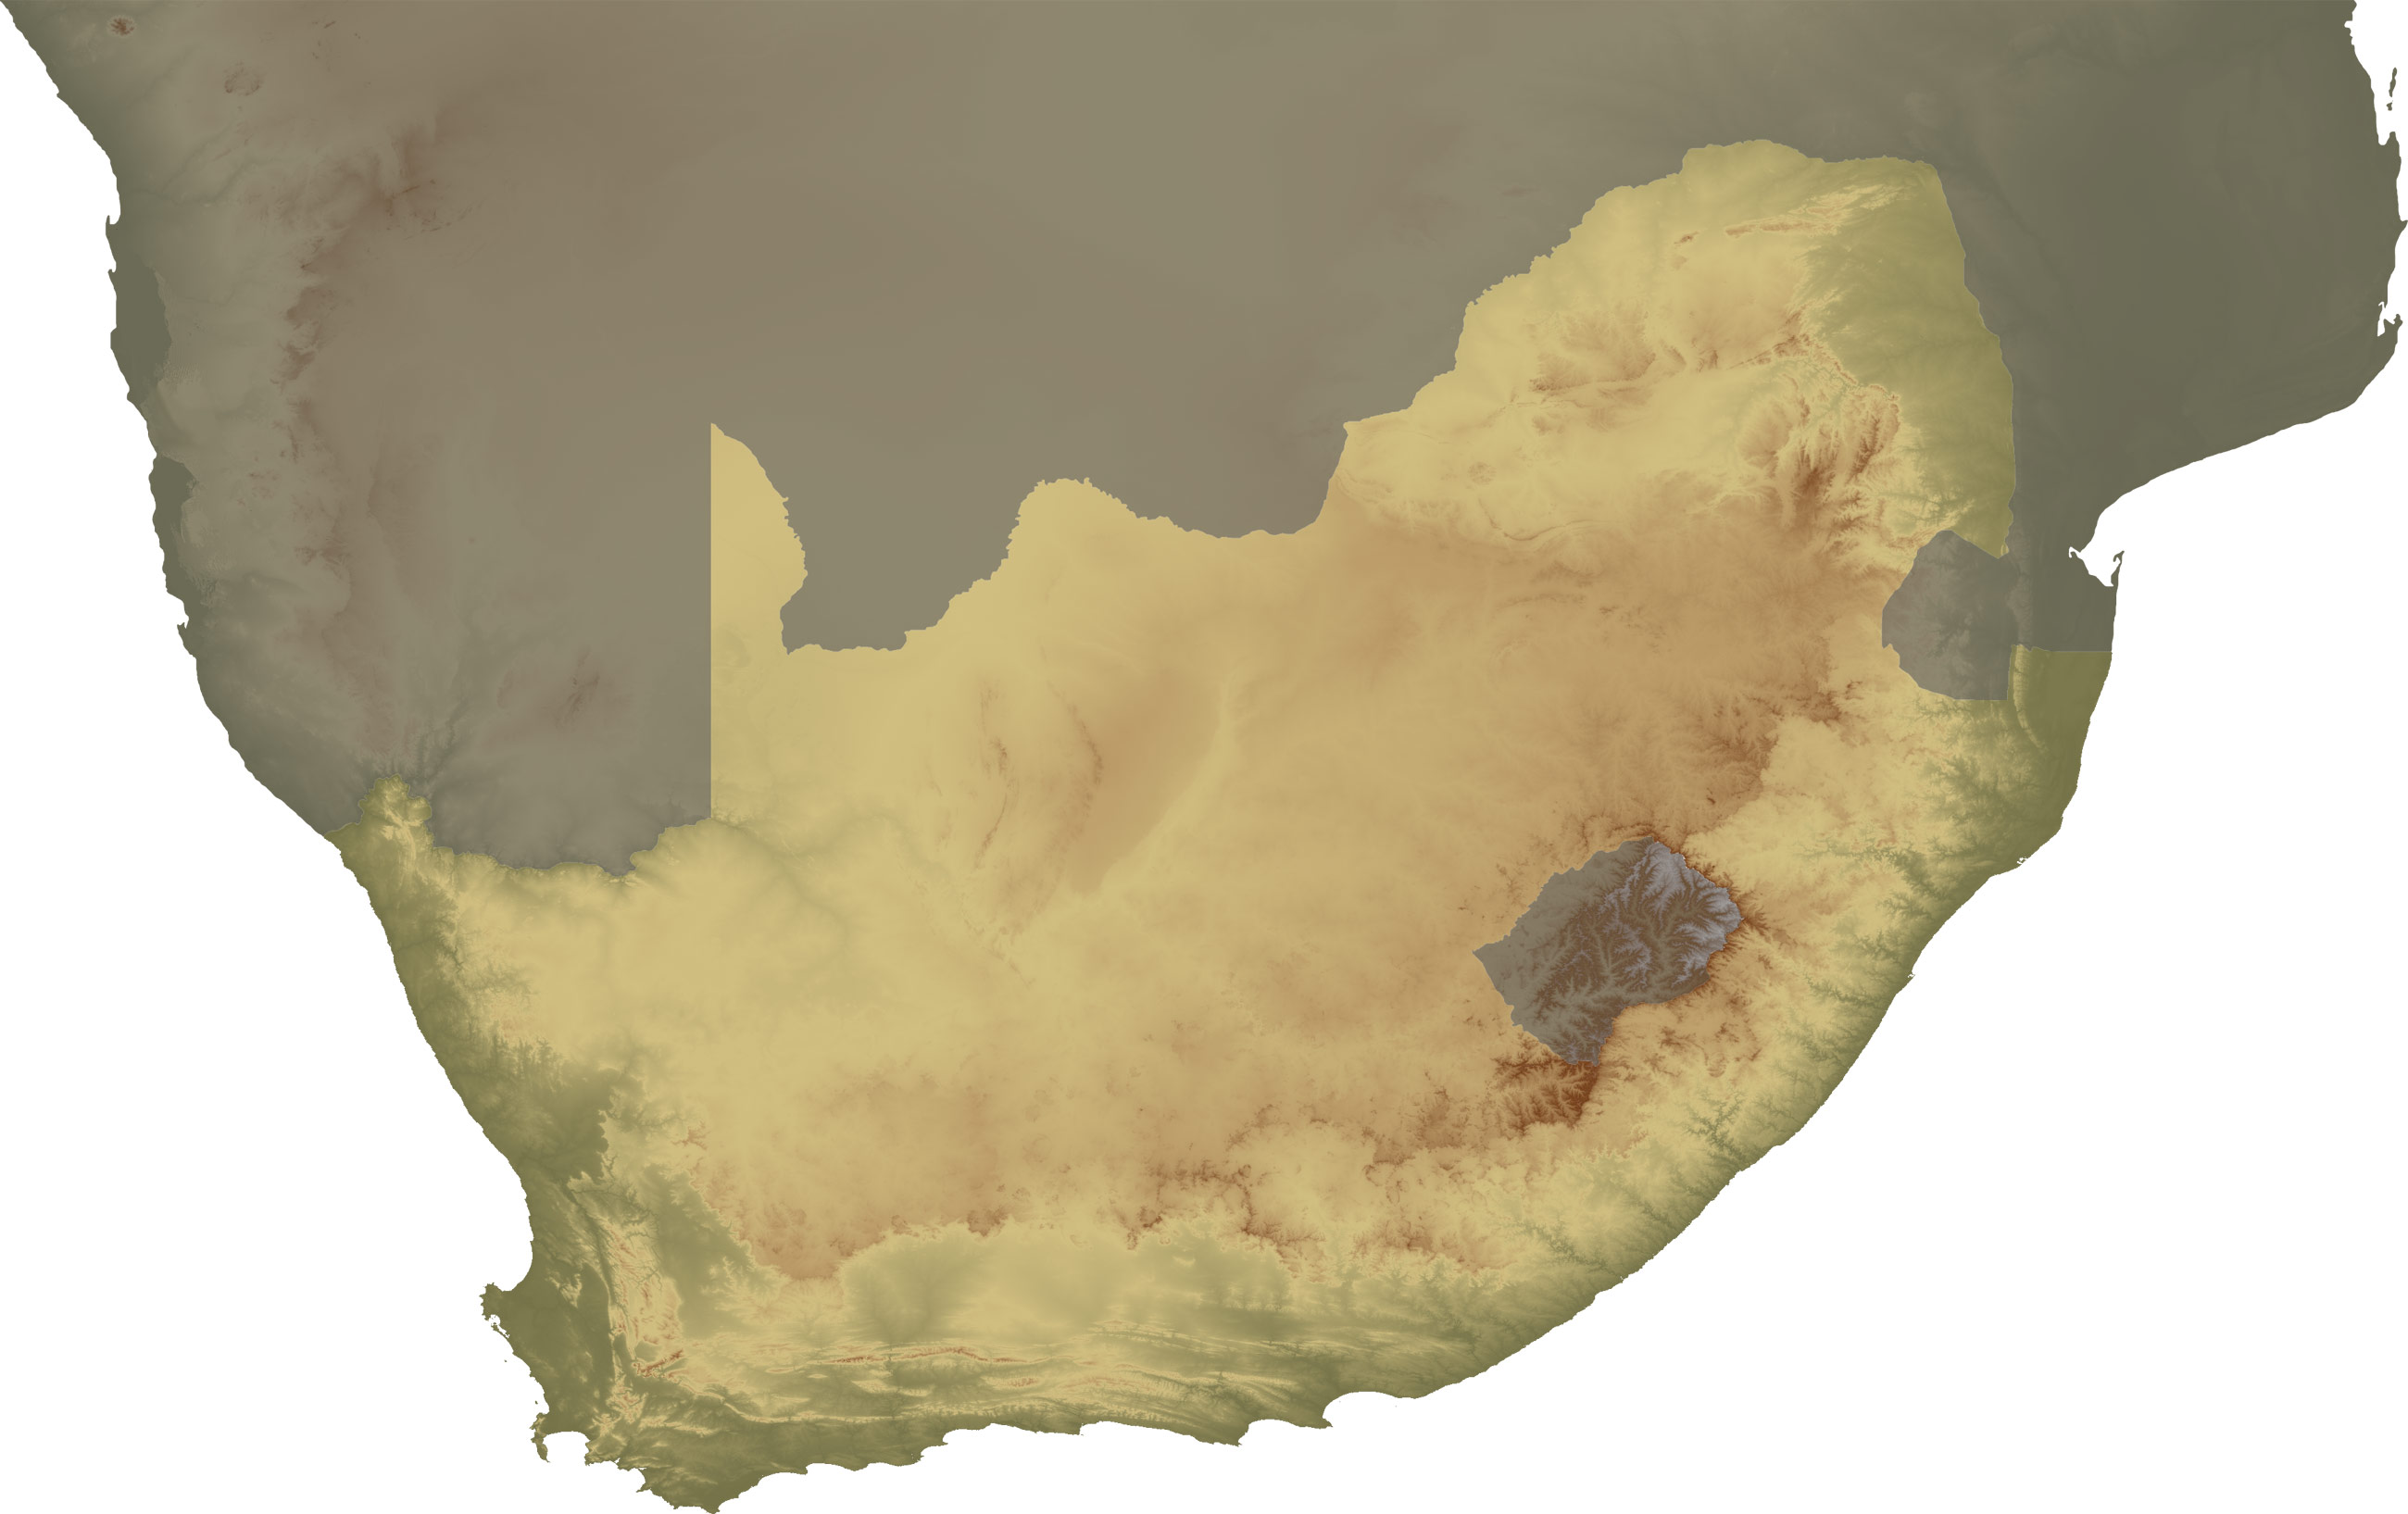 South Africa Topo Continent